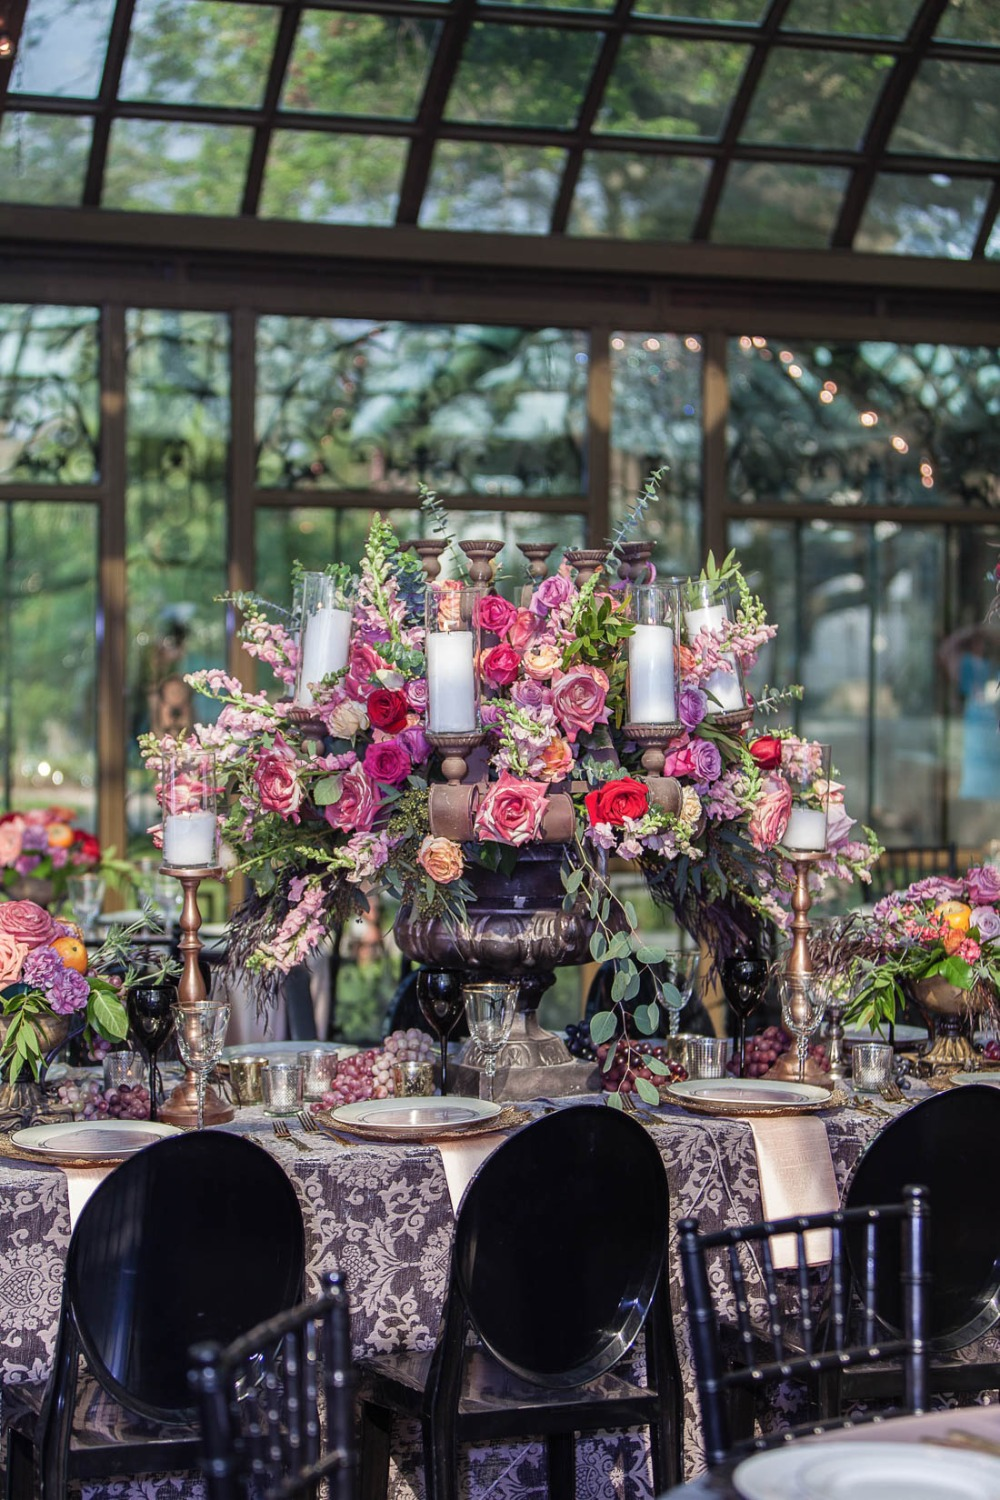 Giant floral centerpiece